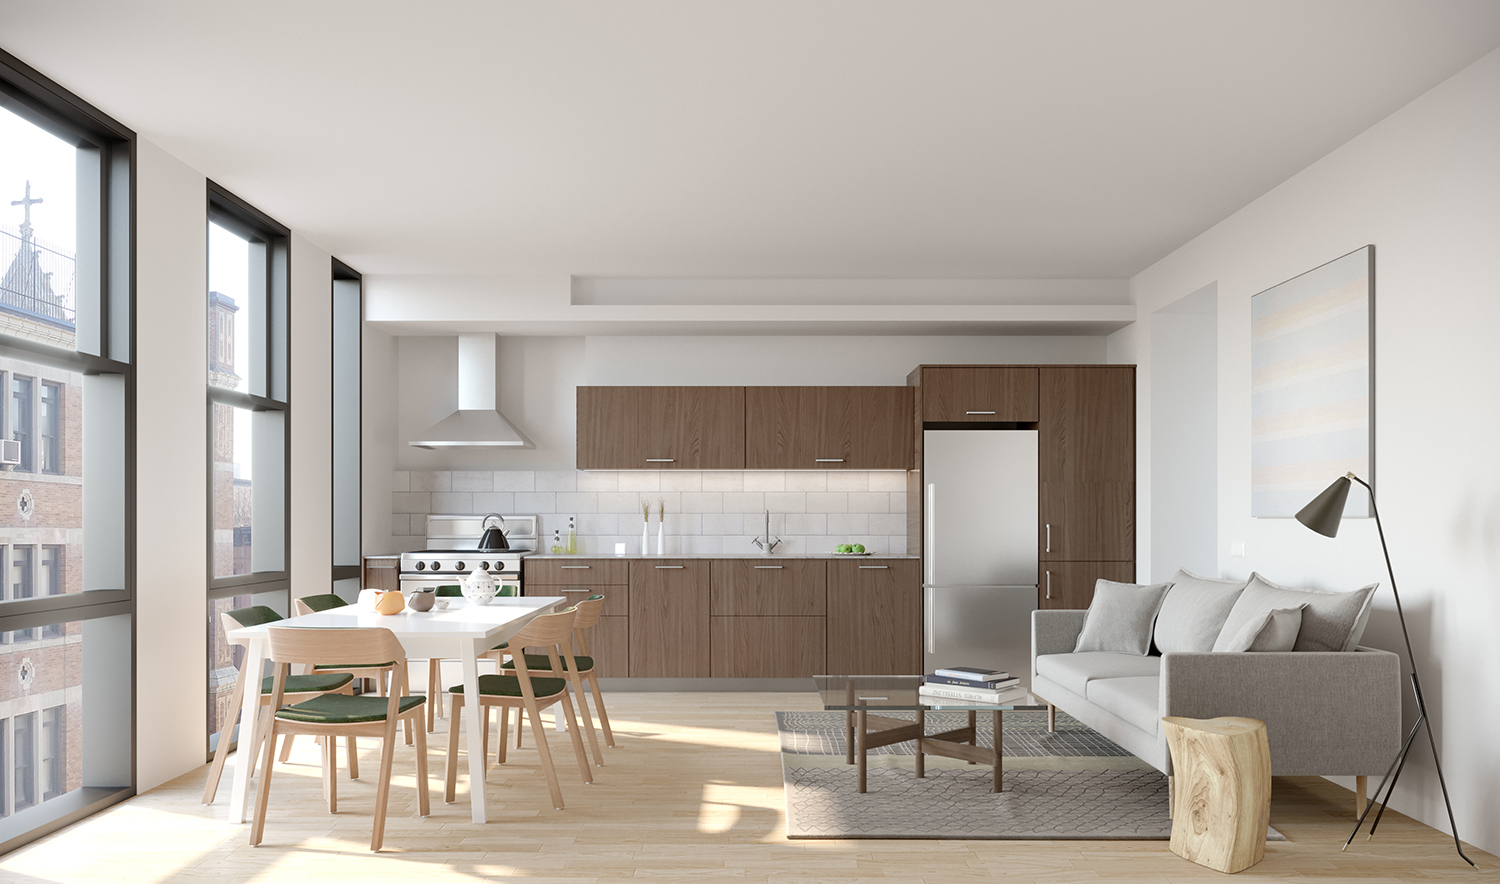 Verse H_Interior Rendering_02_Typical Unit Living s_ver 2.jpg